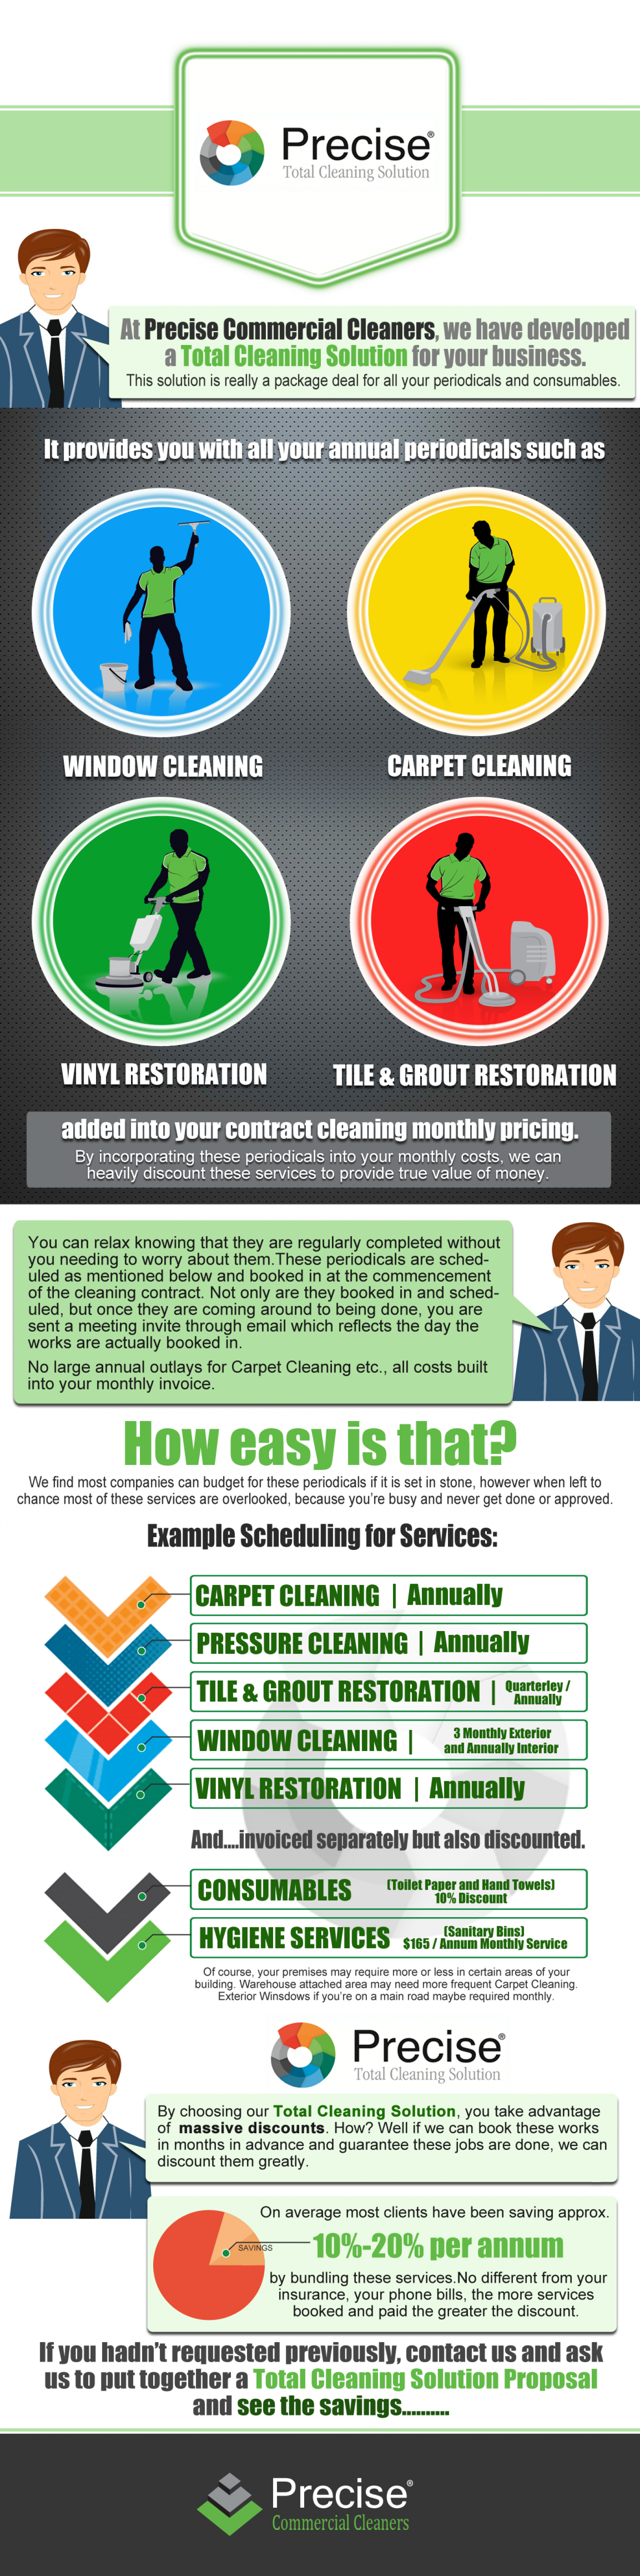 precise-commercial-cleaners-infographic_